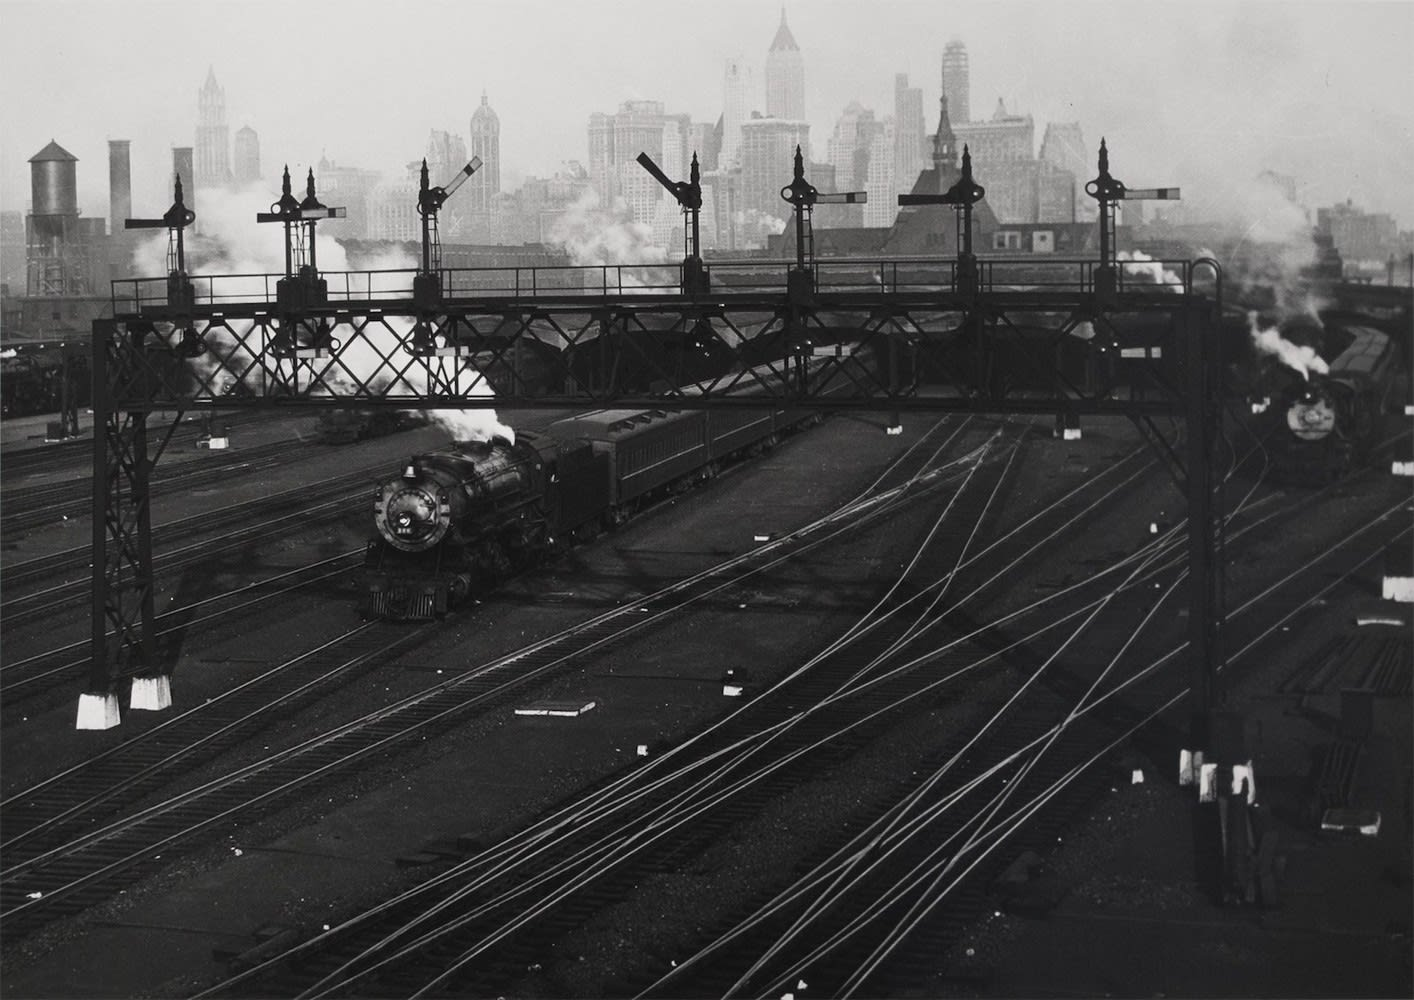 Berenice Abbott, Hoboken railroad yards looking towards Manhattan, 1935